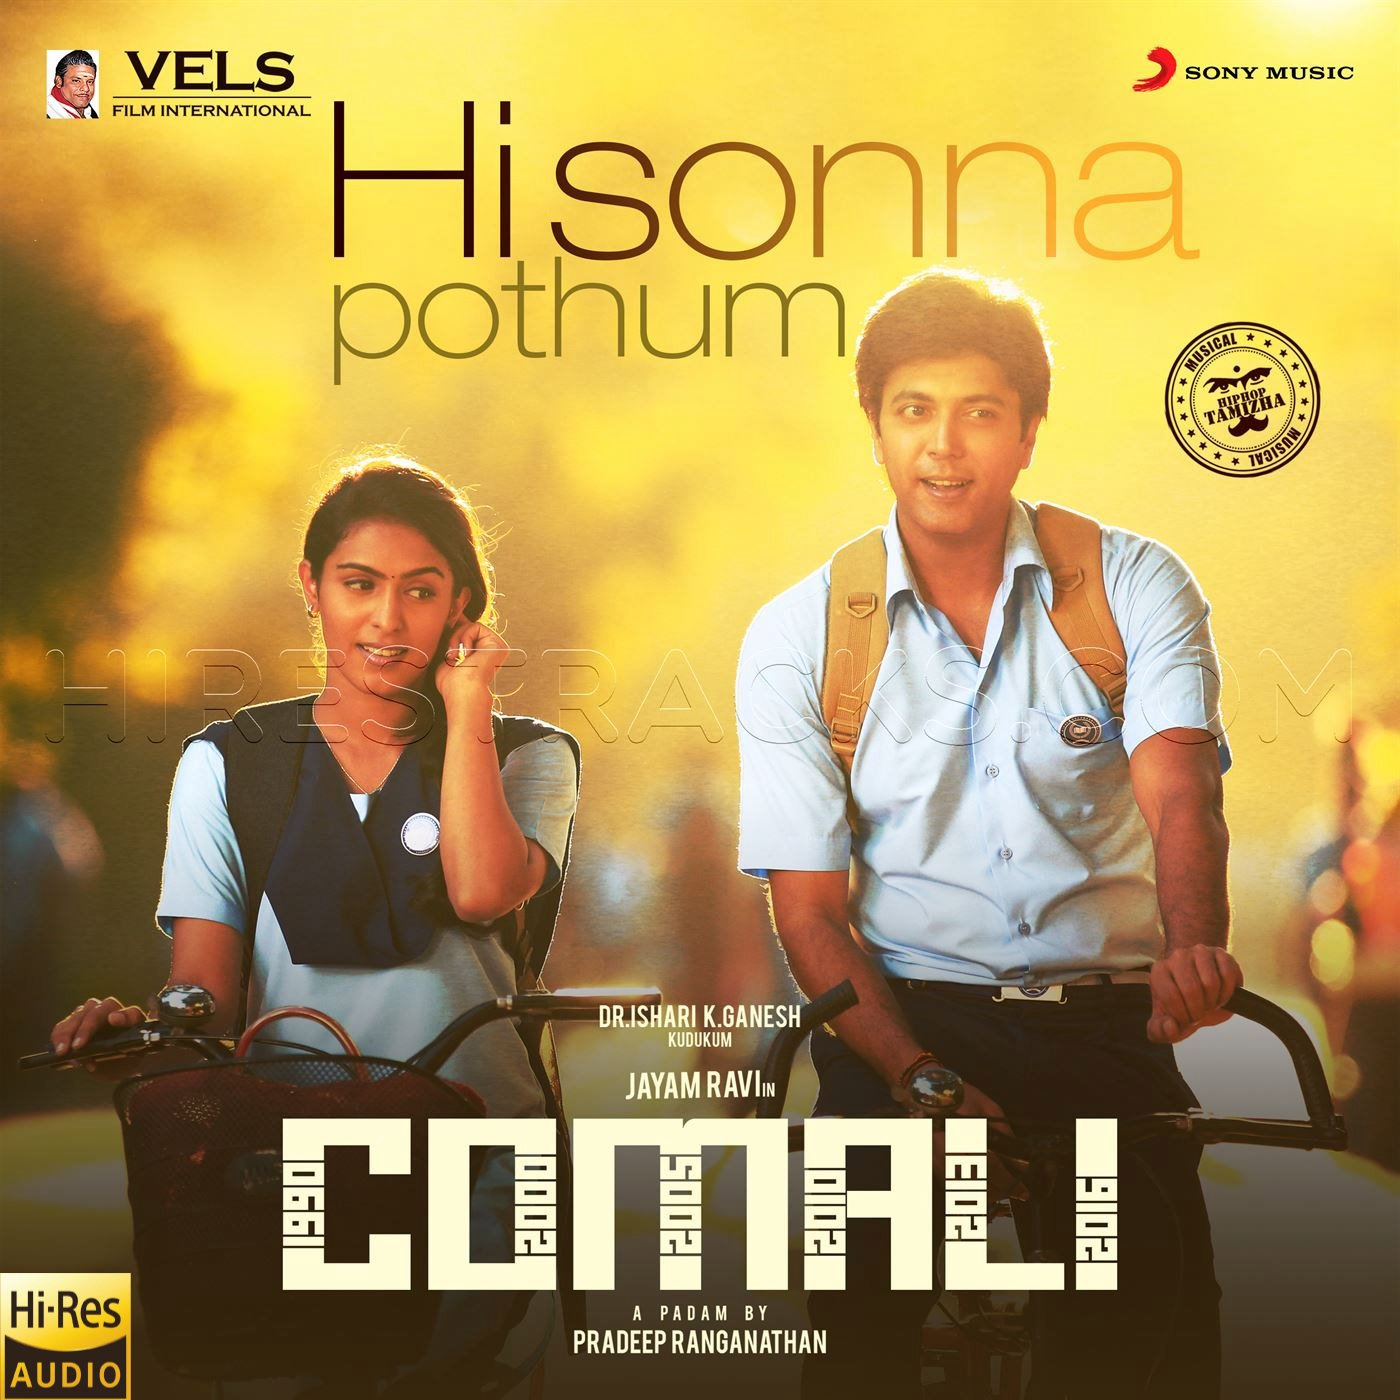 Hi Sonna Pothum (From Comali) (2019) (Hiphop Tamizha) (Sony Music) [24 BIT – 48 KHZ] [Digital-DL-FLAC]